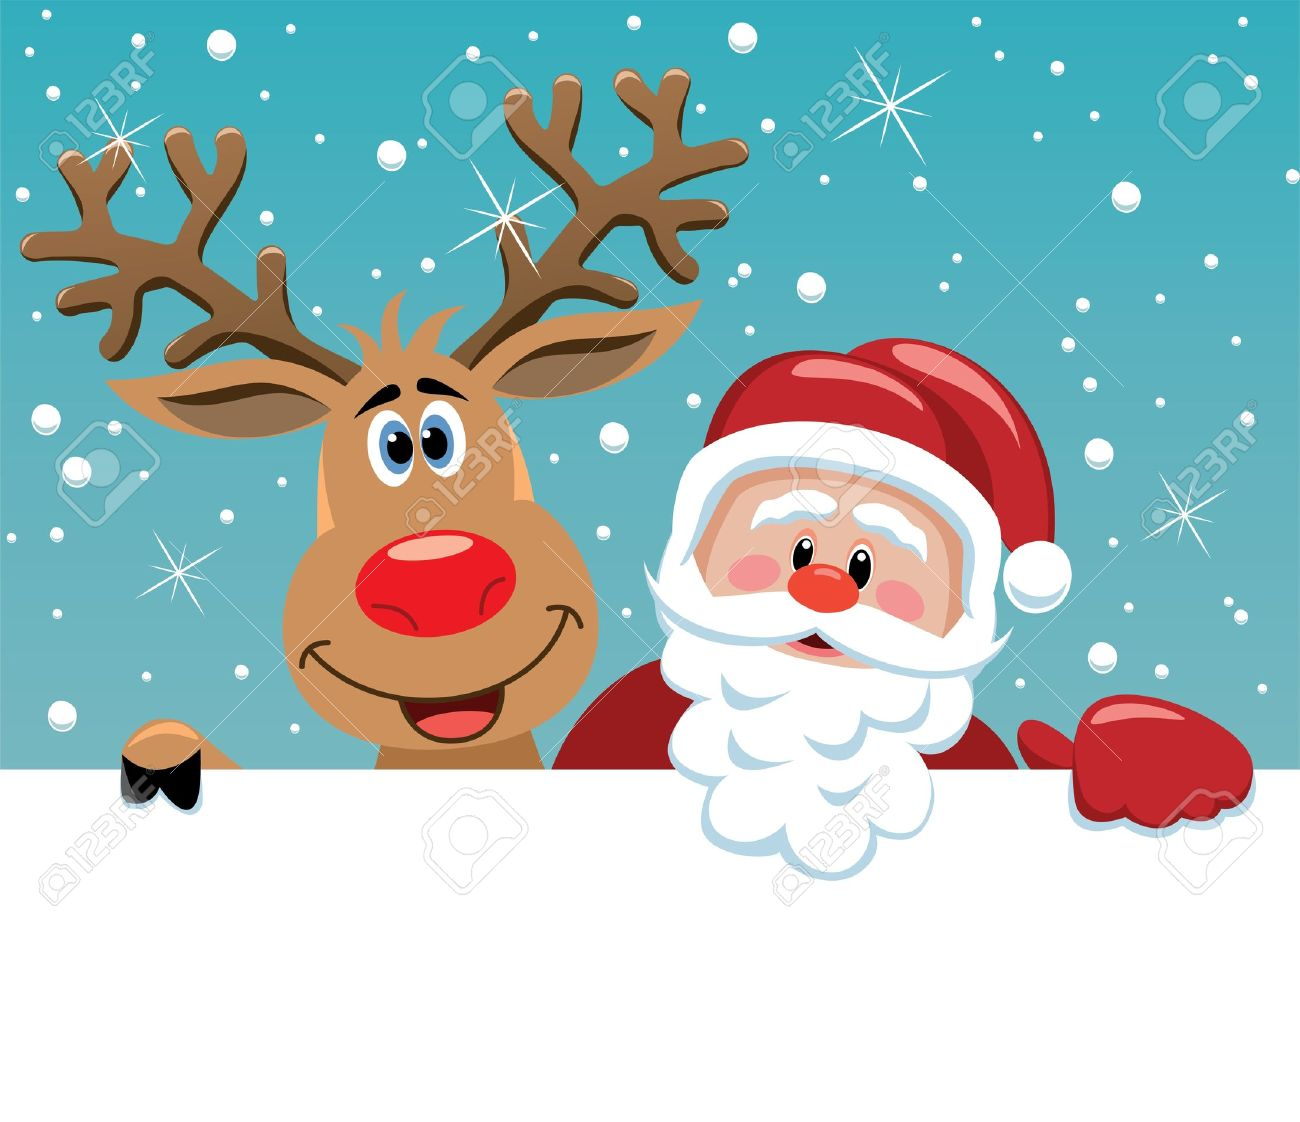 christmas illustration of santa claus and rudolph deer stock vector 11011534 - Rudolph And Santa